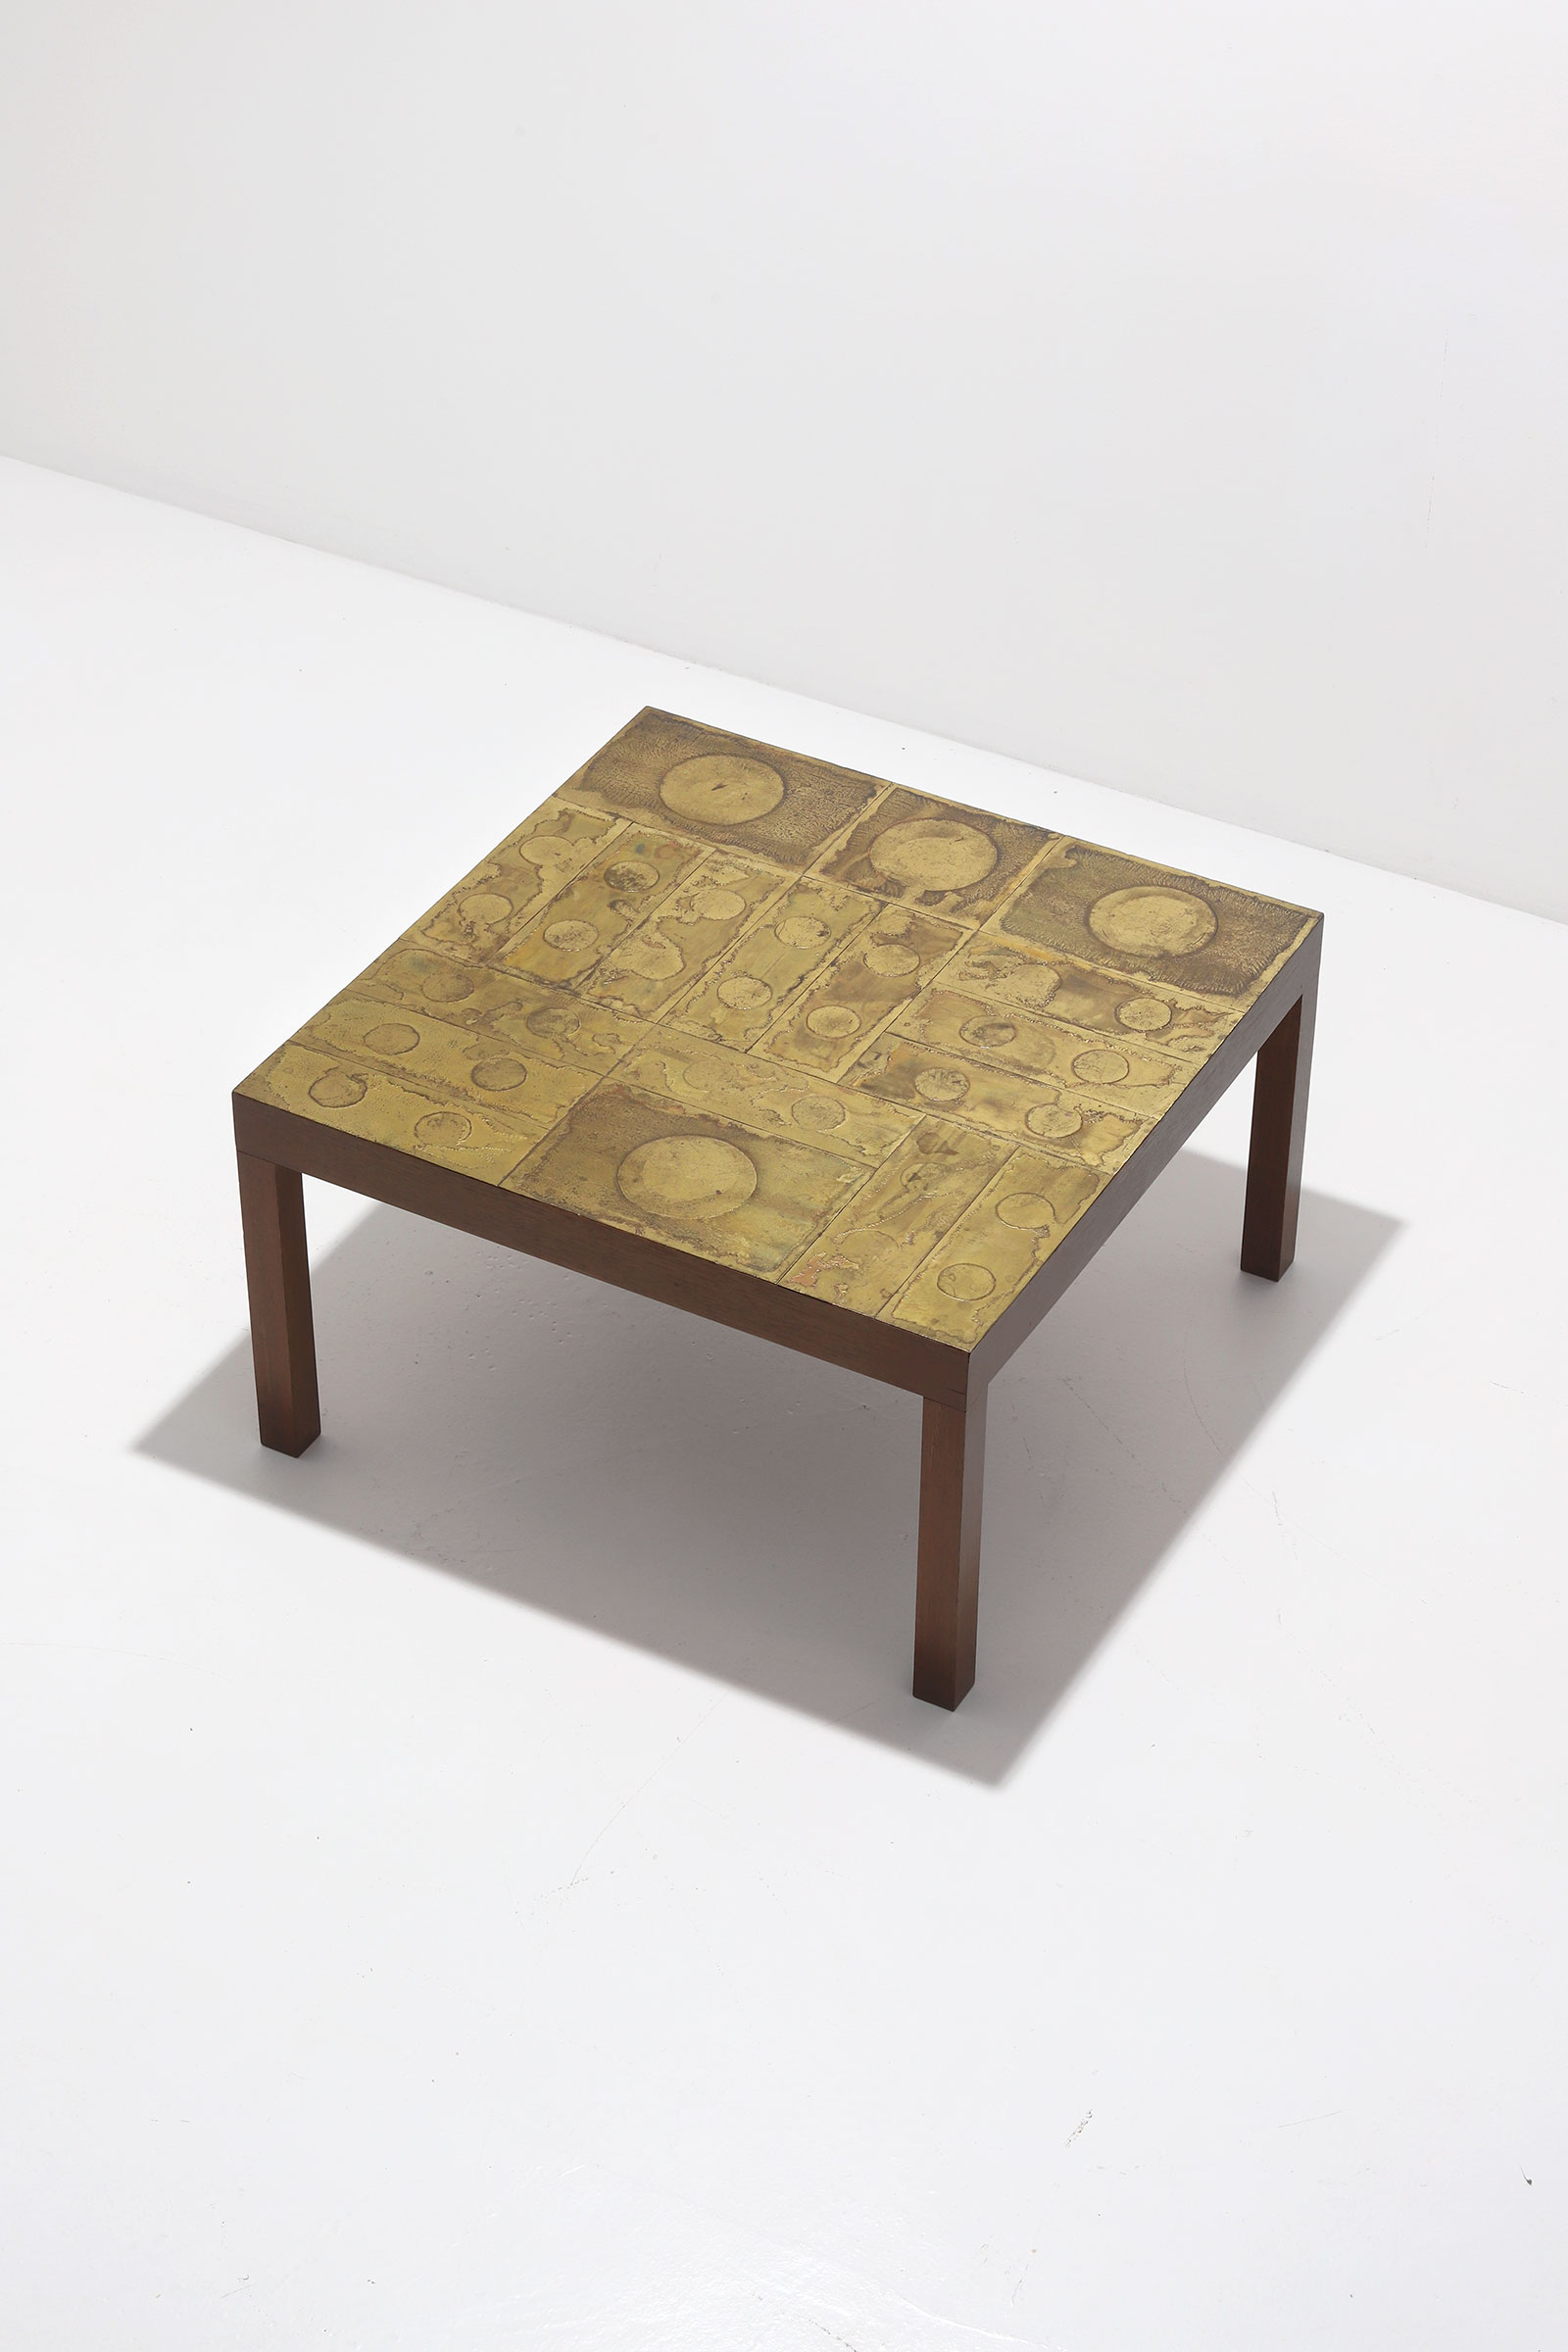 Willy Daro Brass etched Coffee Table 1970simage 3